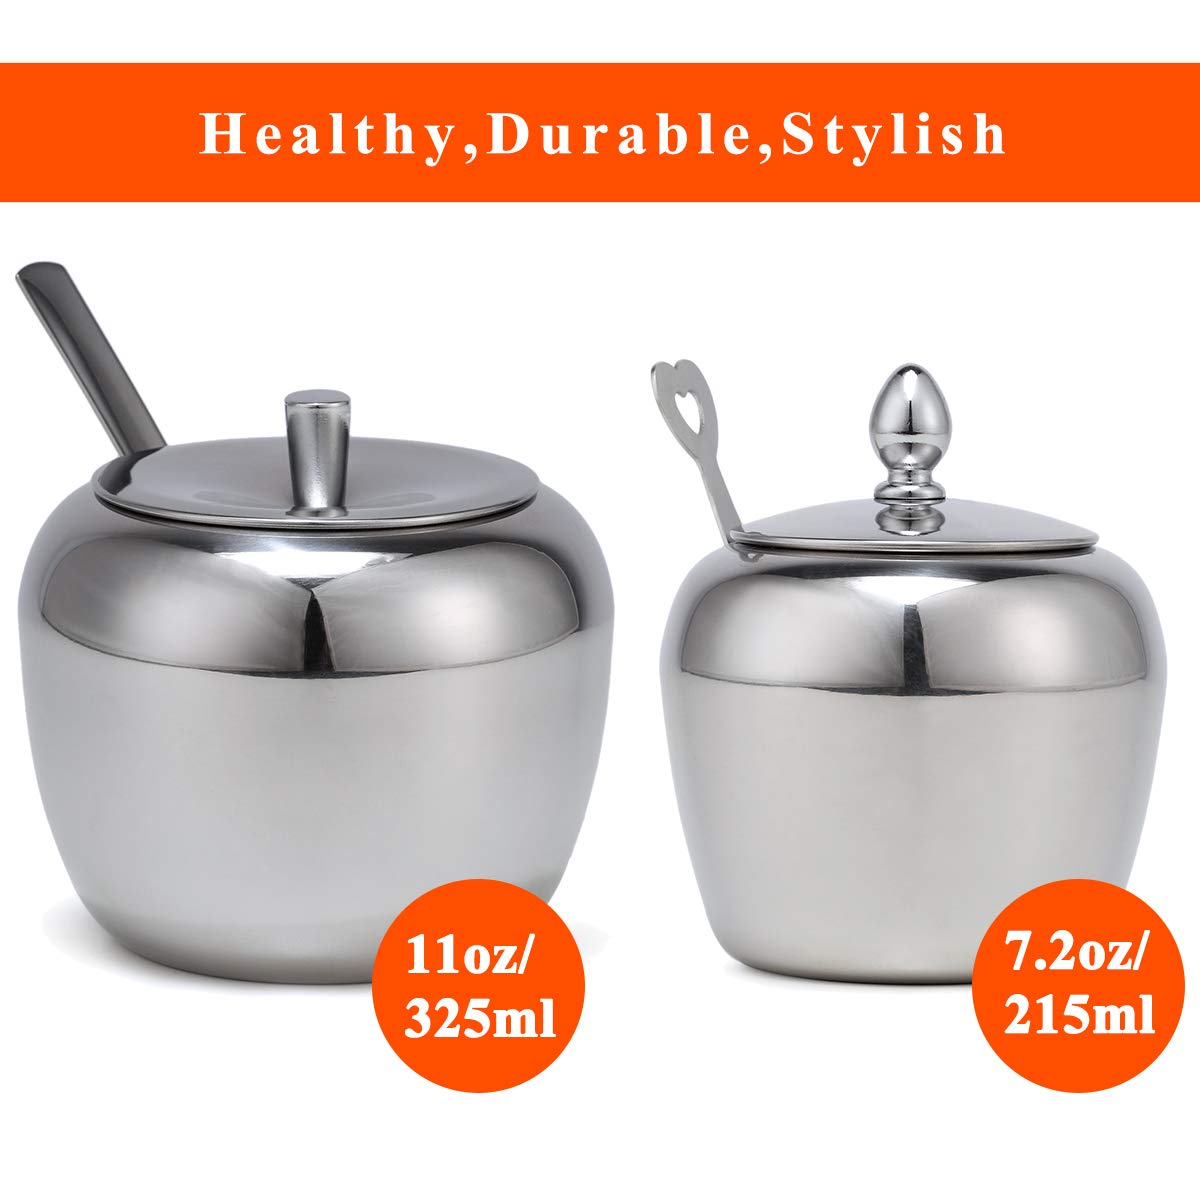 Small Stainless Steel Sugar Bowl with Lid and Spoon in Apple Shape for Kitchen 7.2oz/215ml